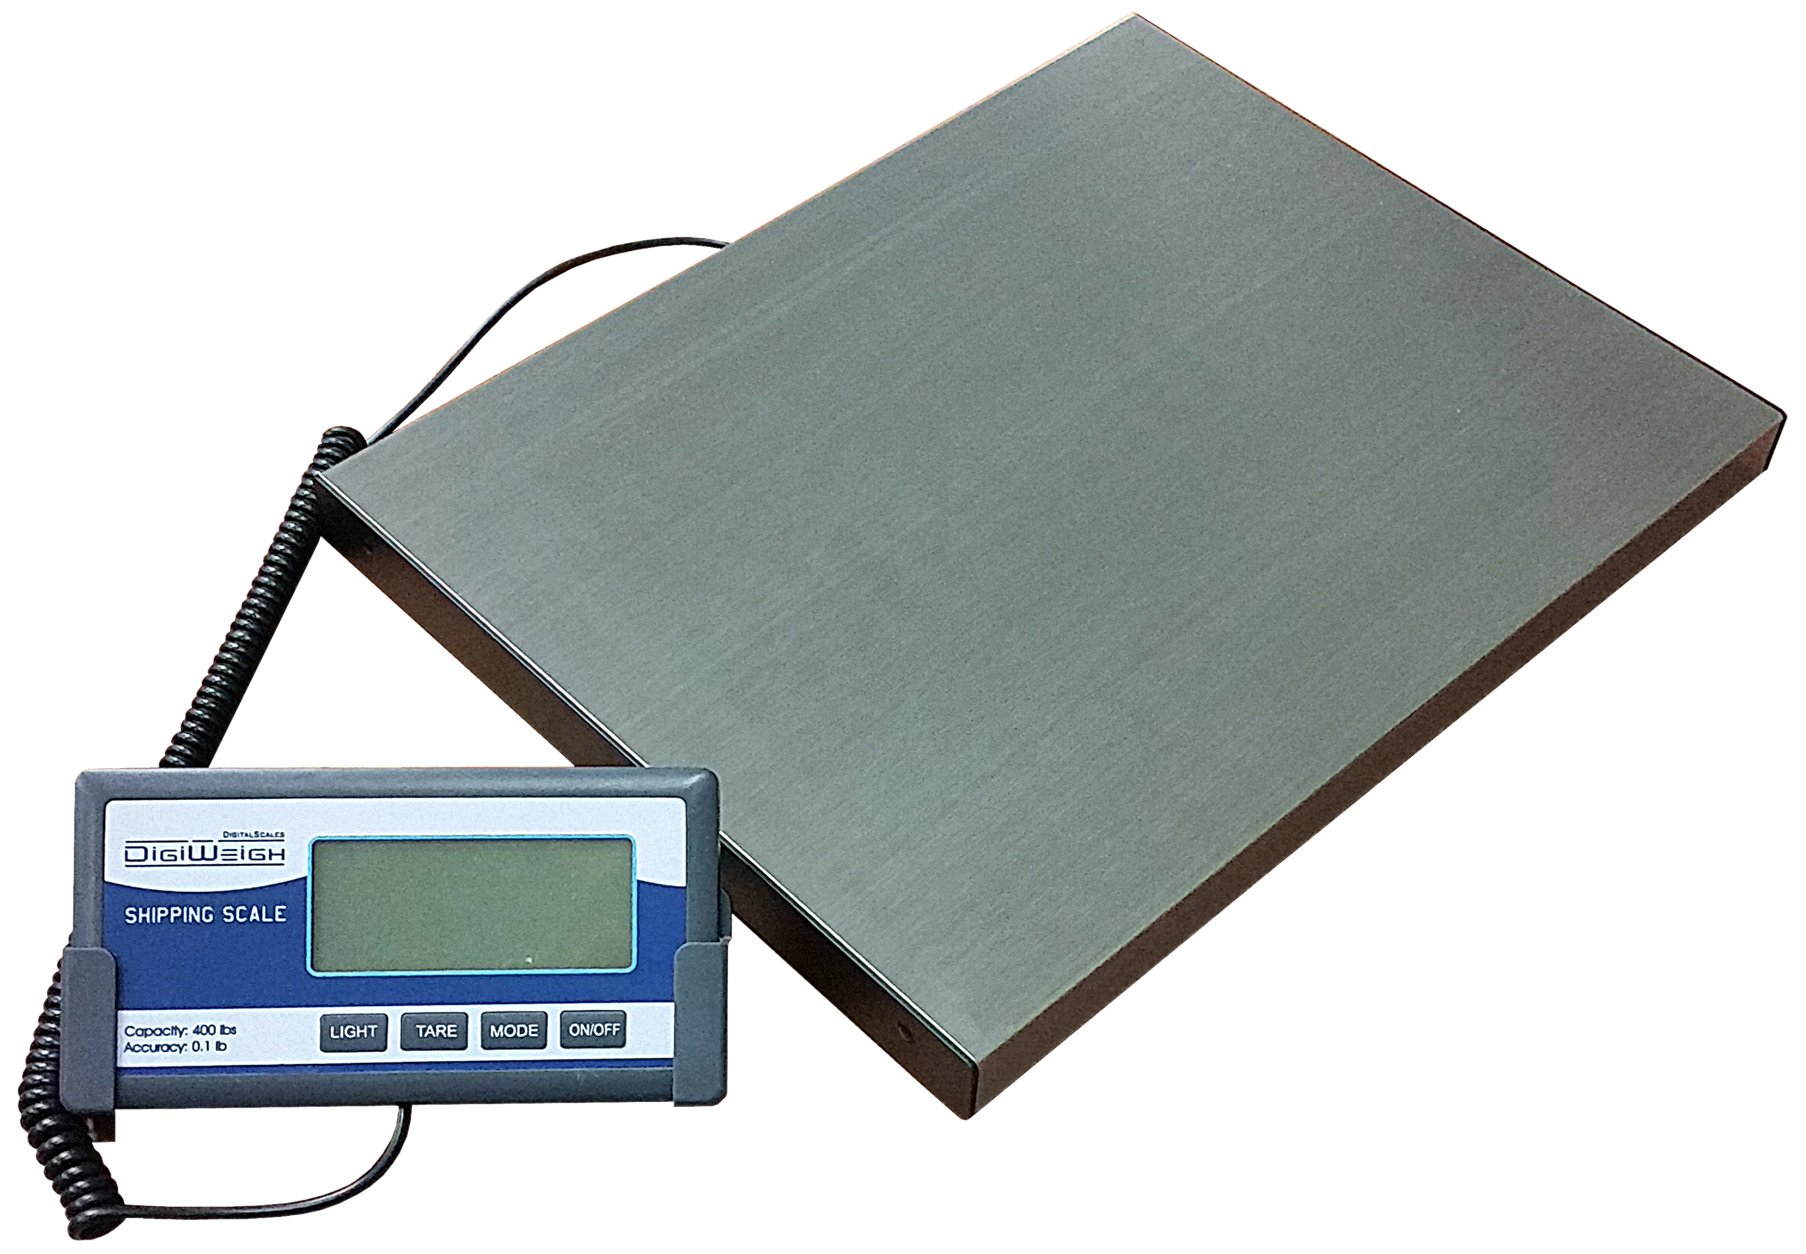 DigiWeigh 400 Lb. Shipping Scale (DW-64) by DigiWeigh